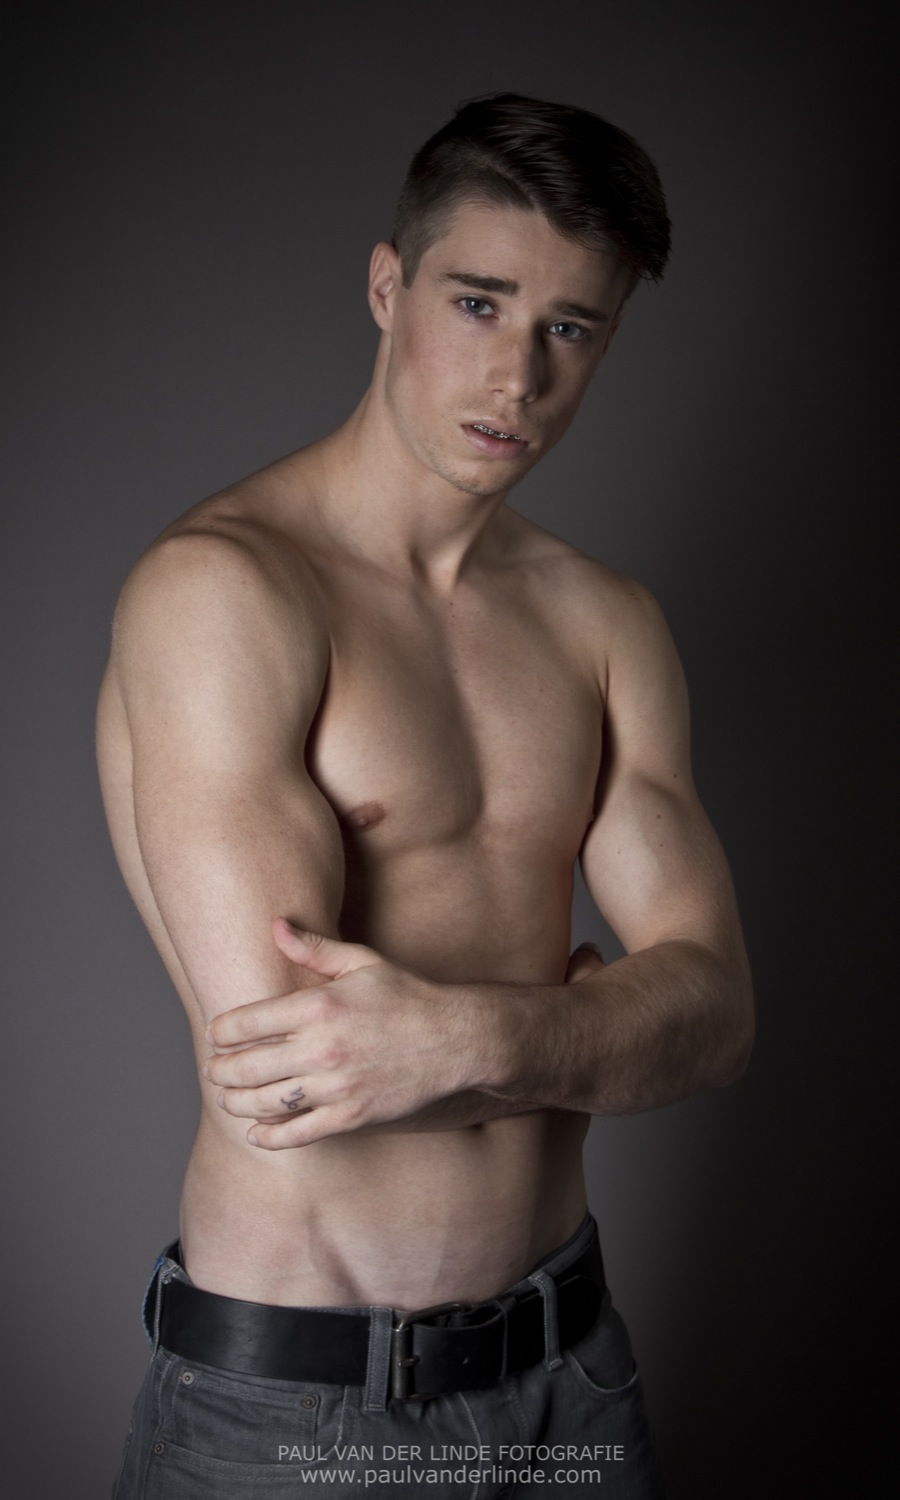 The Stars Come Out To Play: Jamie Nicholls - Shirtless